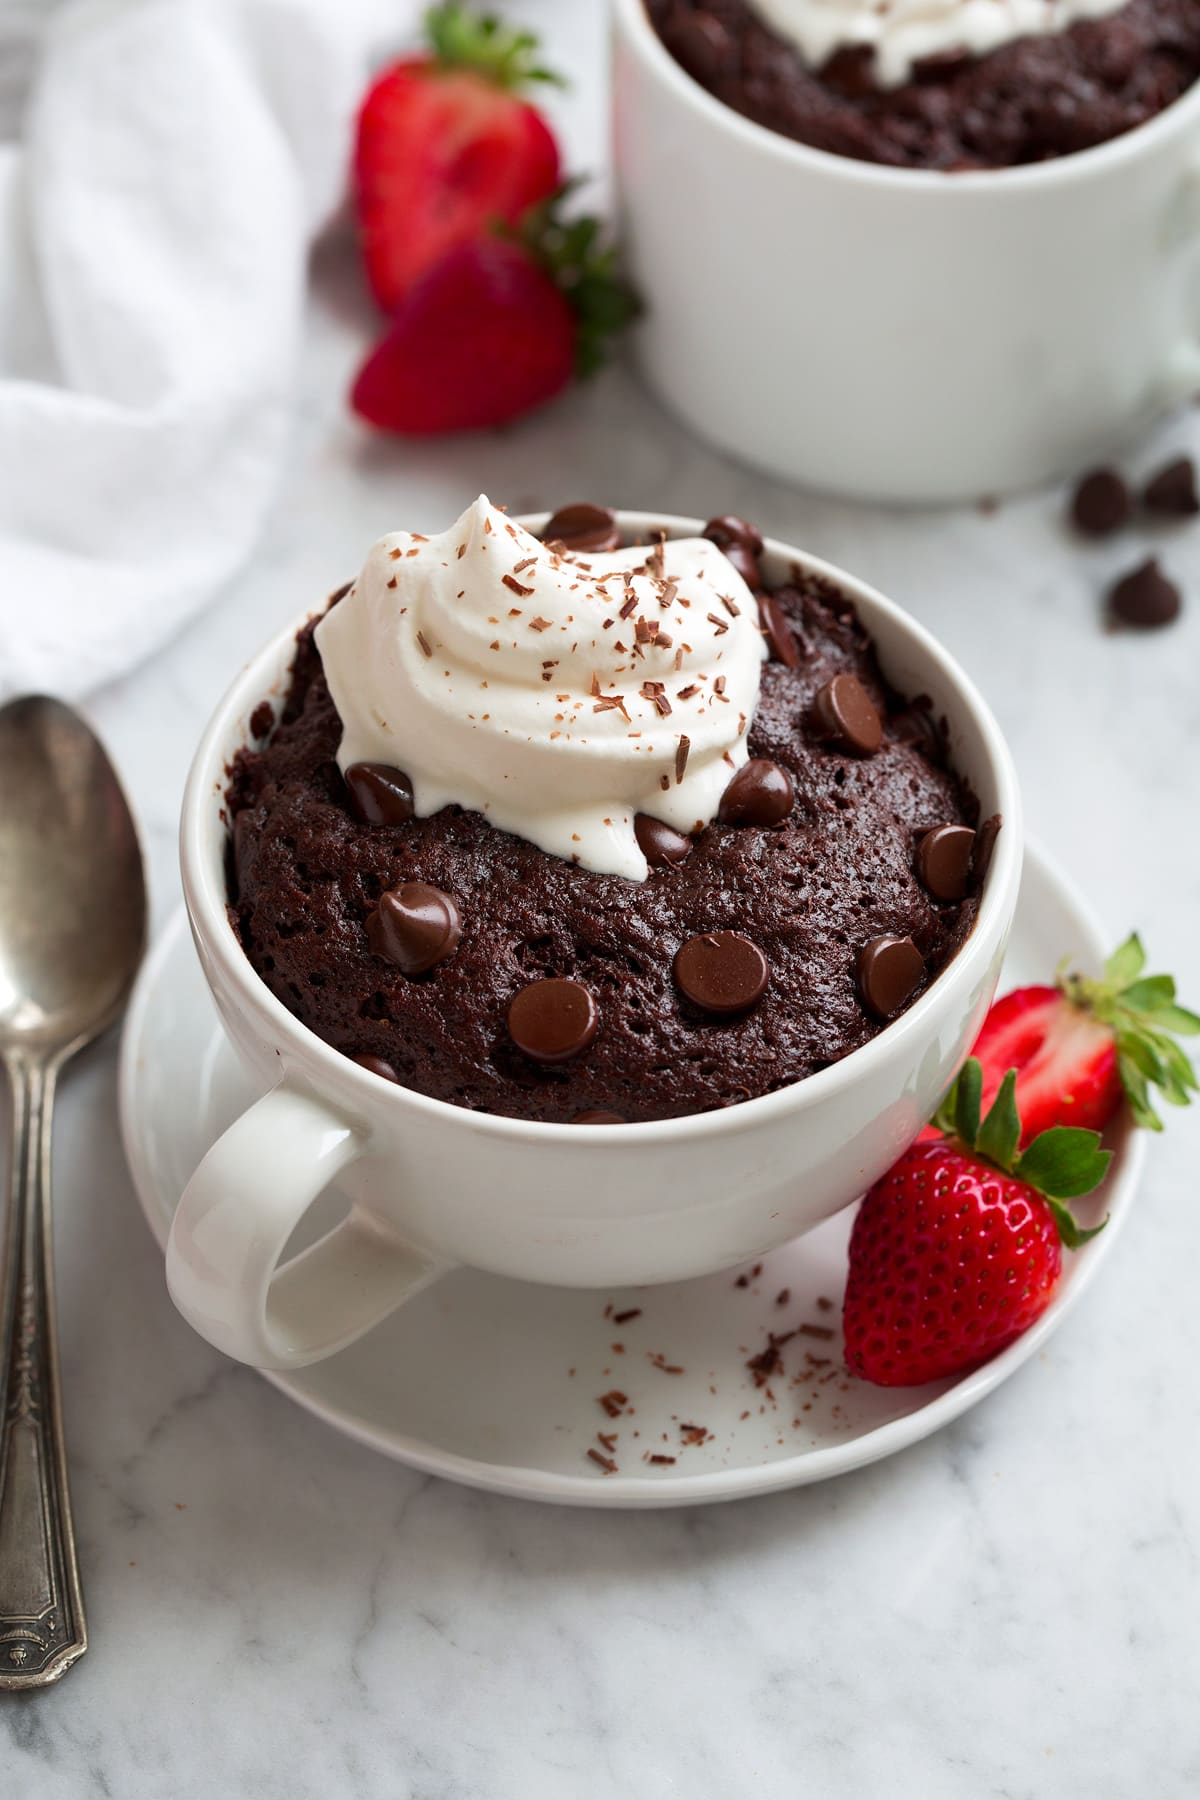 Chocolate Mug Cake with chocolate chips and dollop of whipped cream on top.